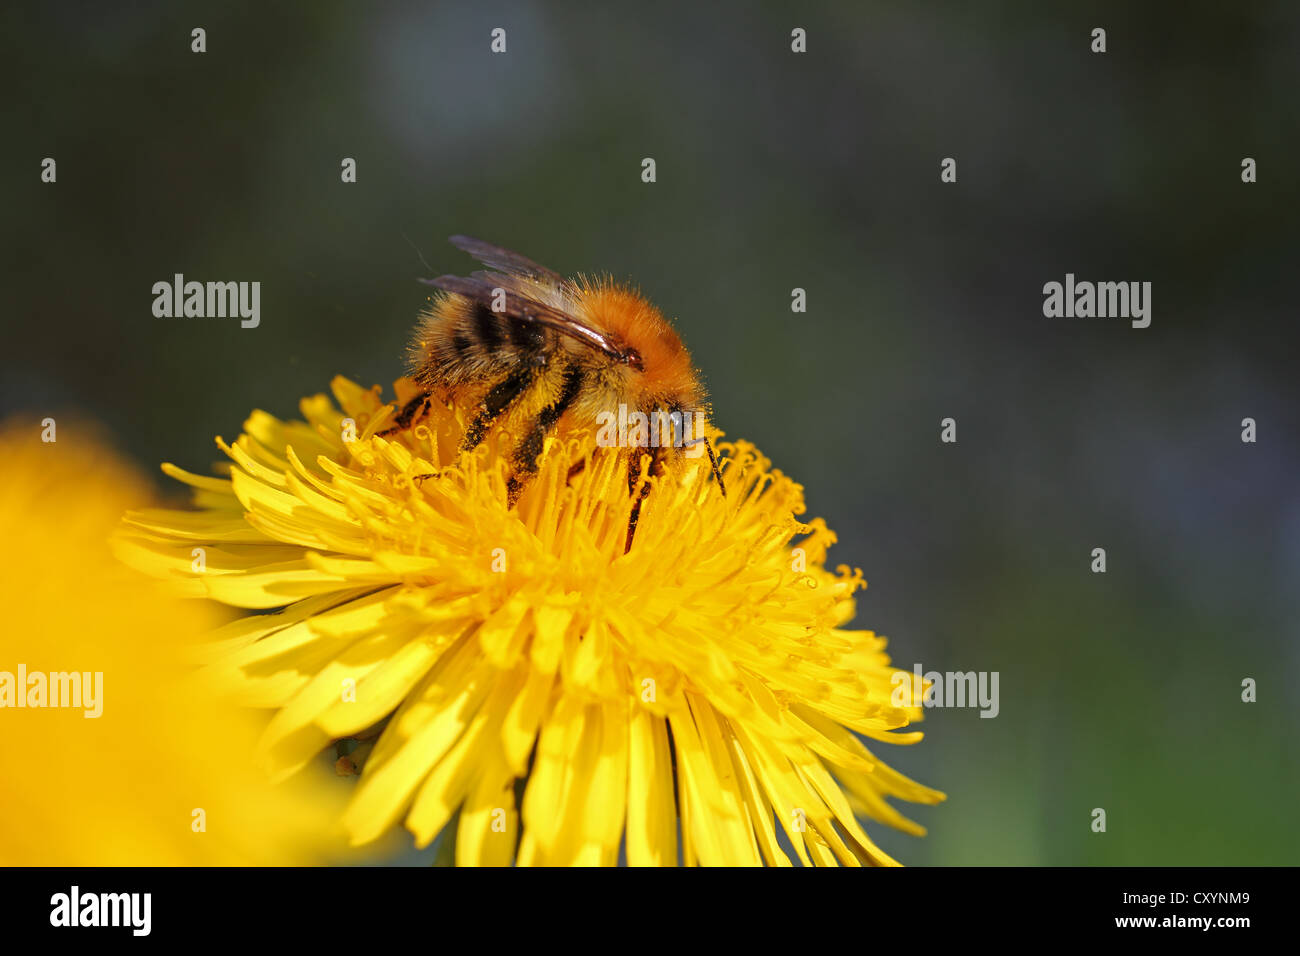 Bumblebee (Bombus sp.), feeding on a Dandelion flower (Taraxacum sp.), detail view - Stock Image